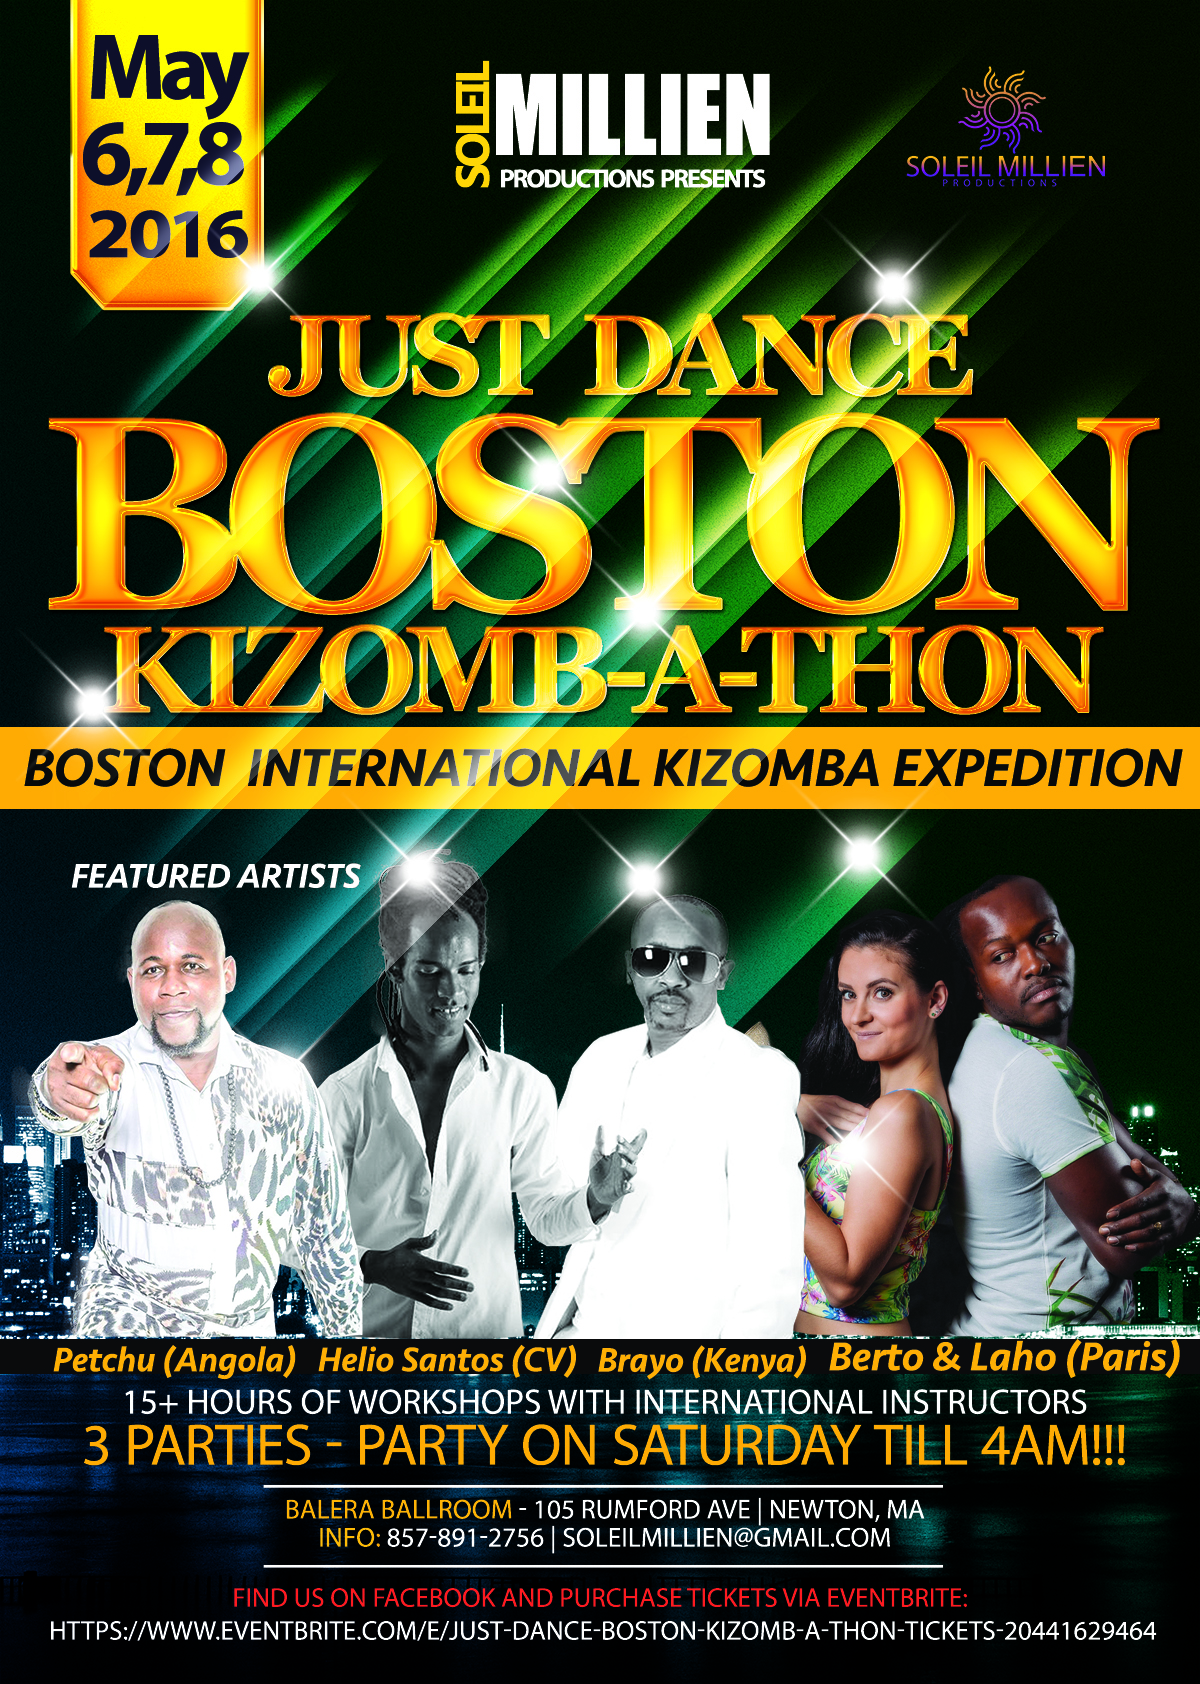 Just Dance Boston Kizombathon 05 06 16